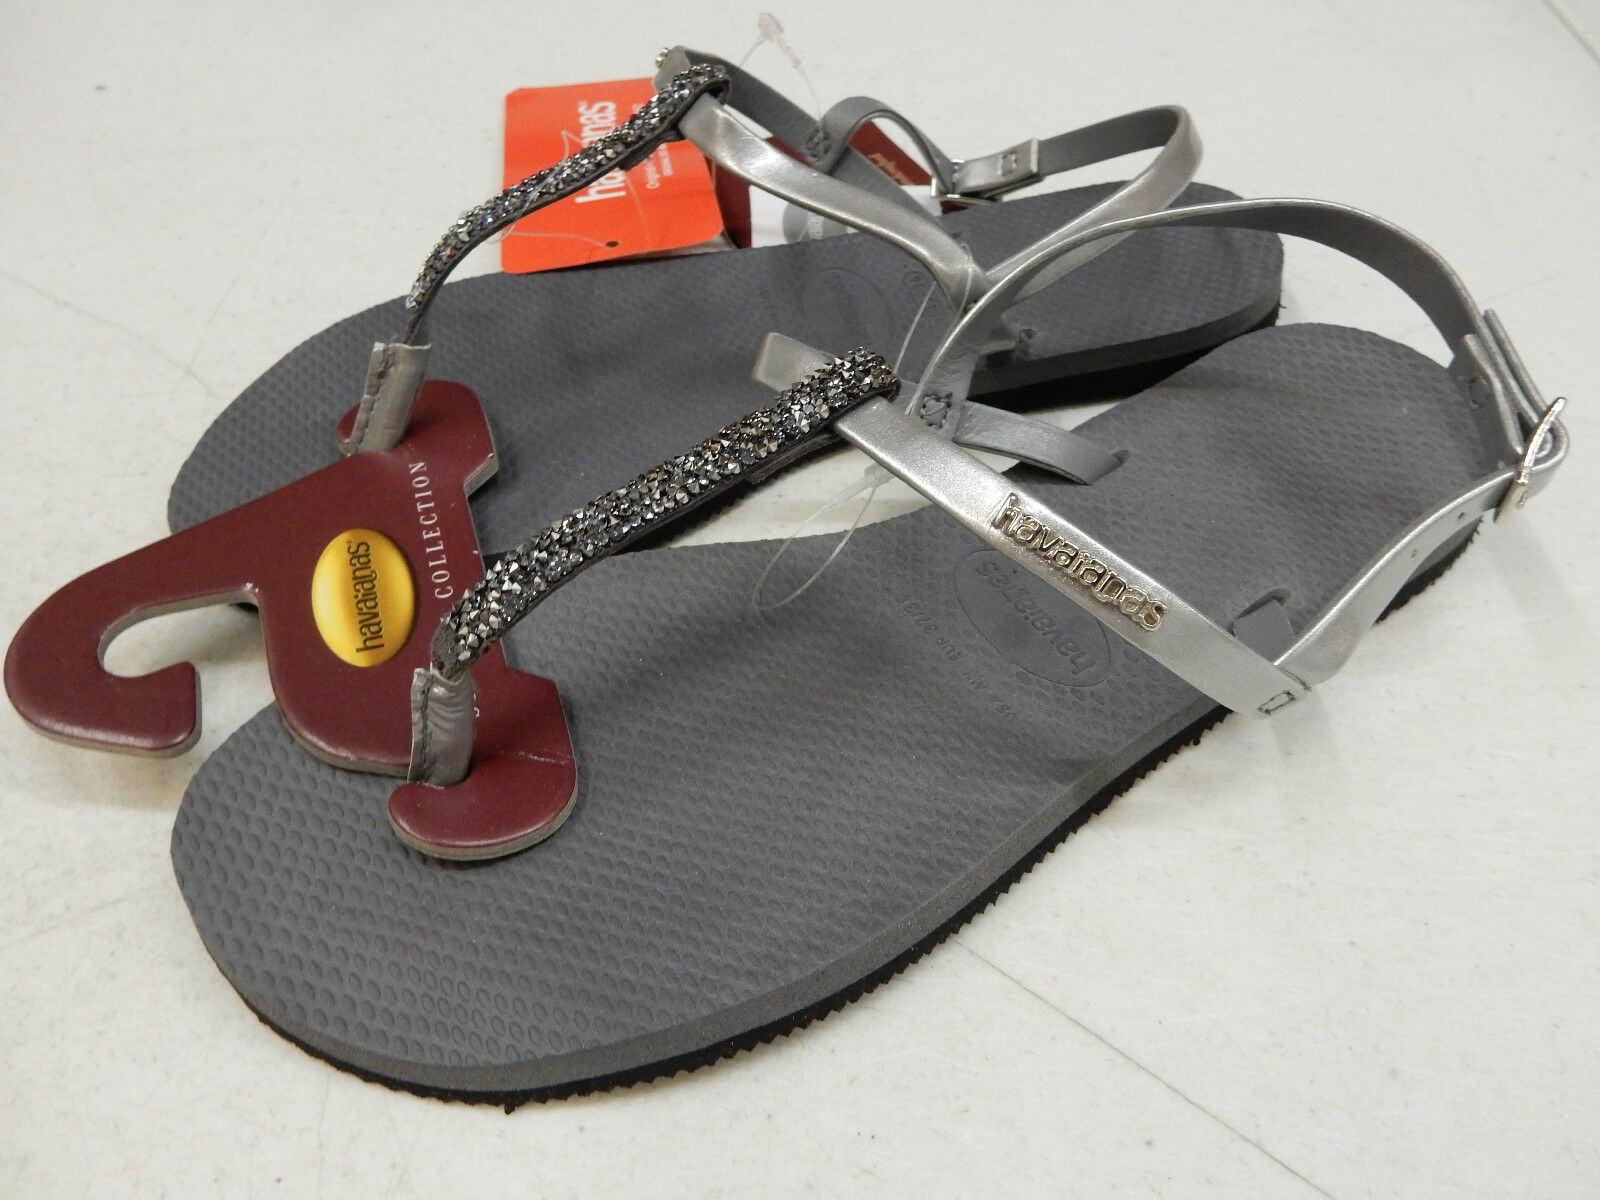 HAVAIANAS Damenschuhe SANDALS YOU RIVIERA RIVIERA YOU CRYSTAL SANDAL STEEL GREY SIZE 7/8 9af2d3